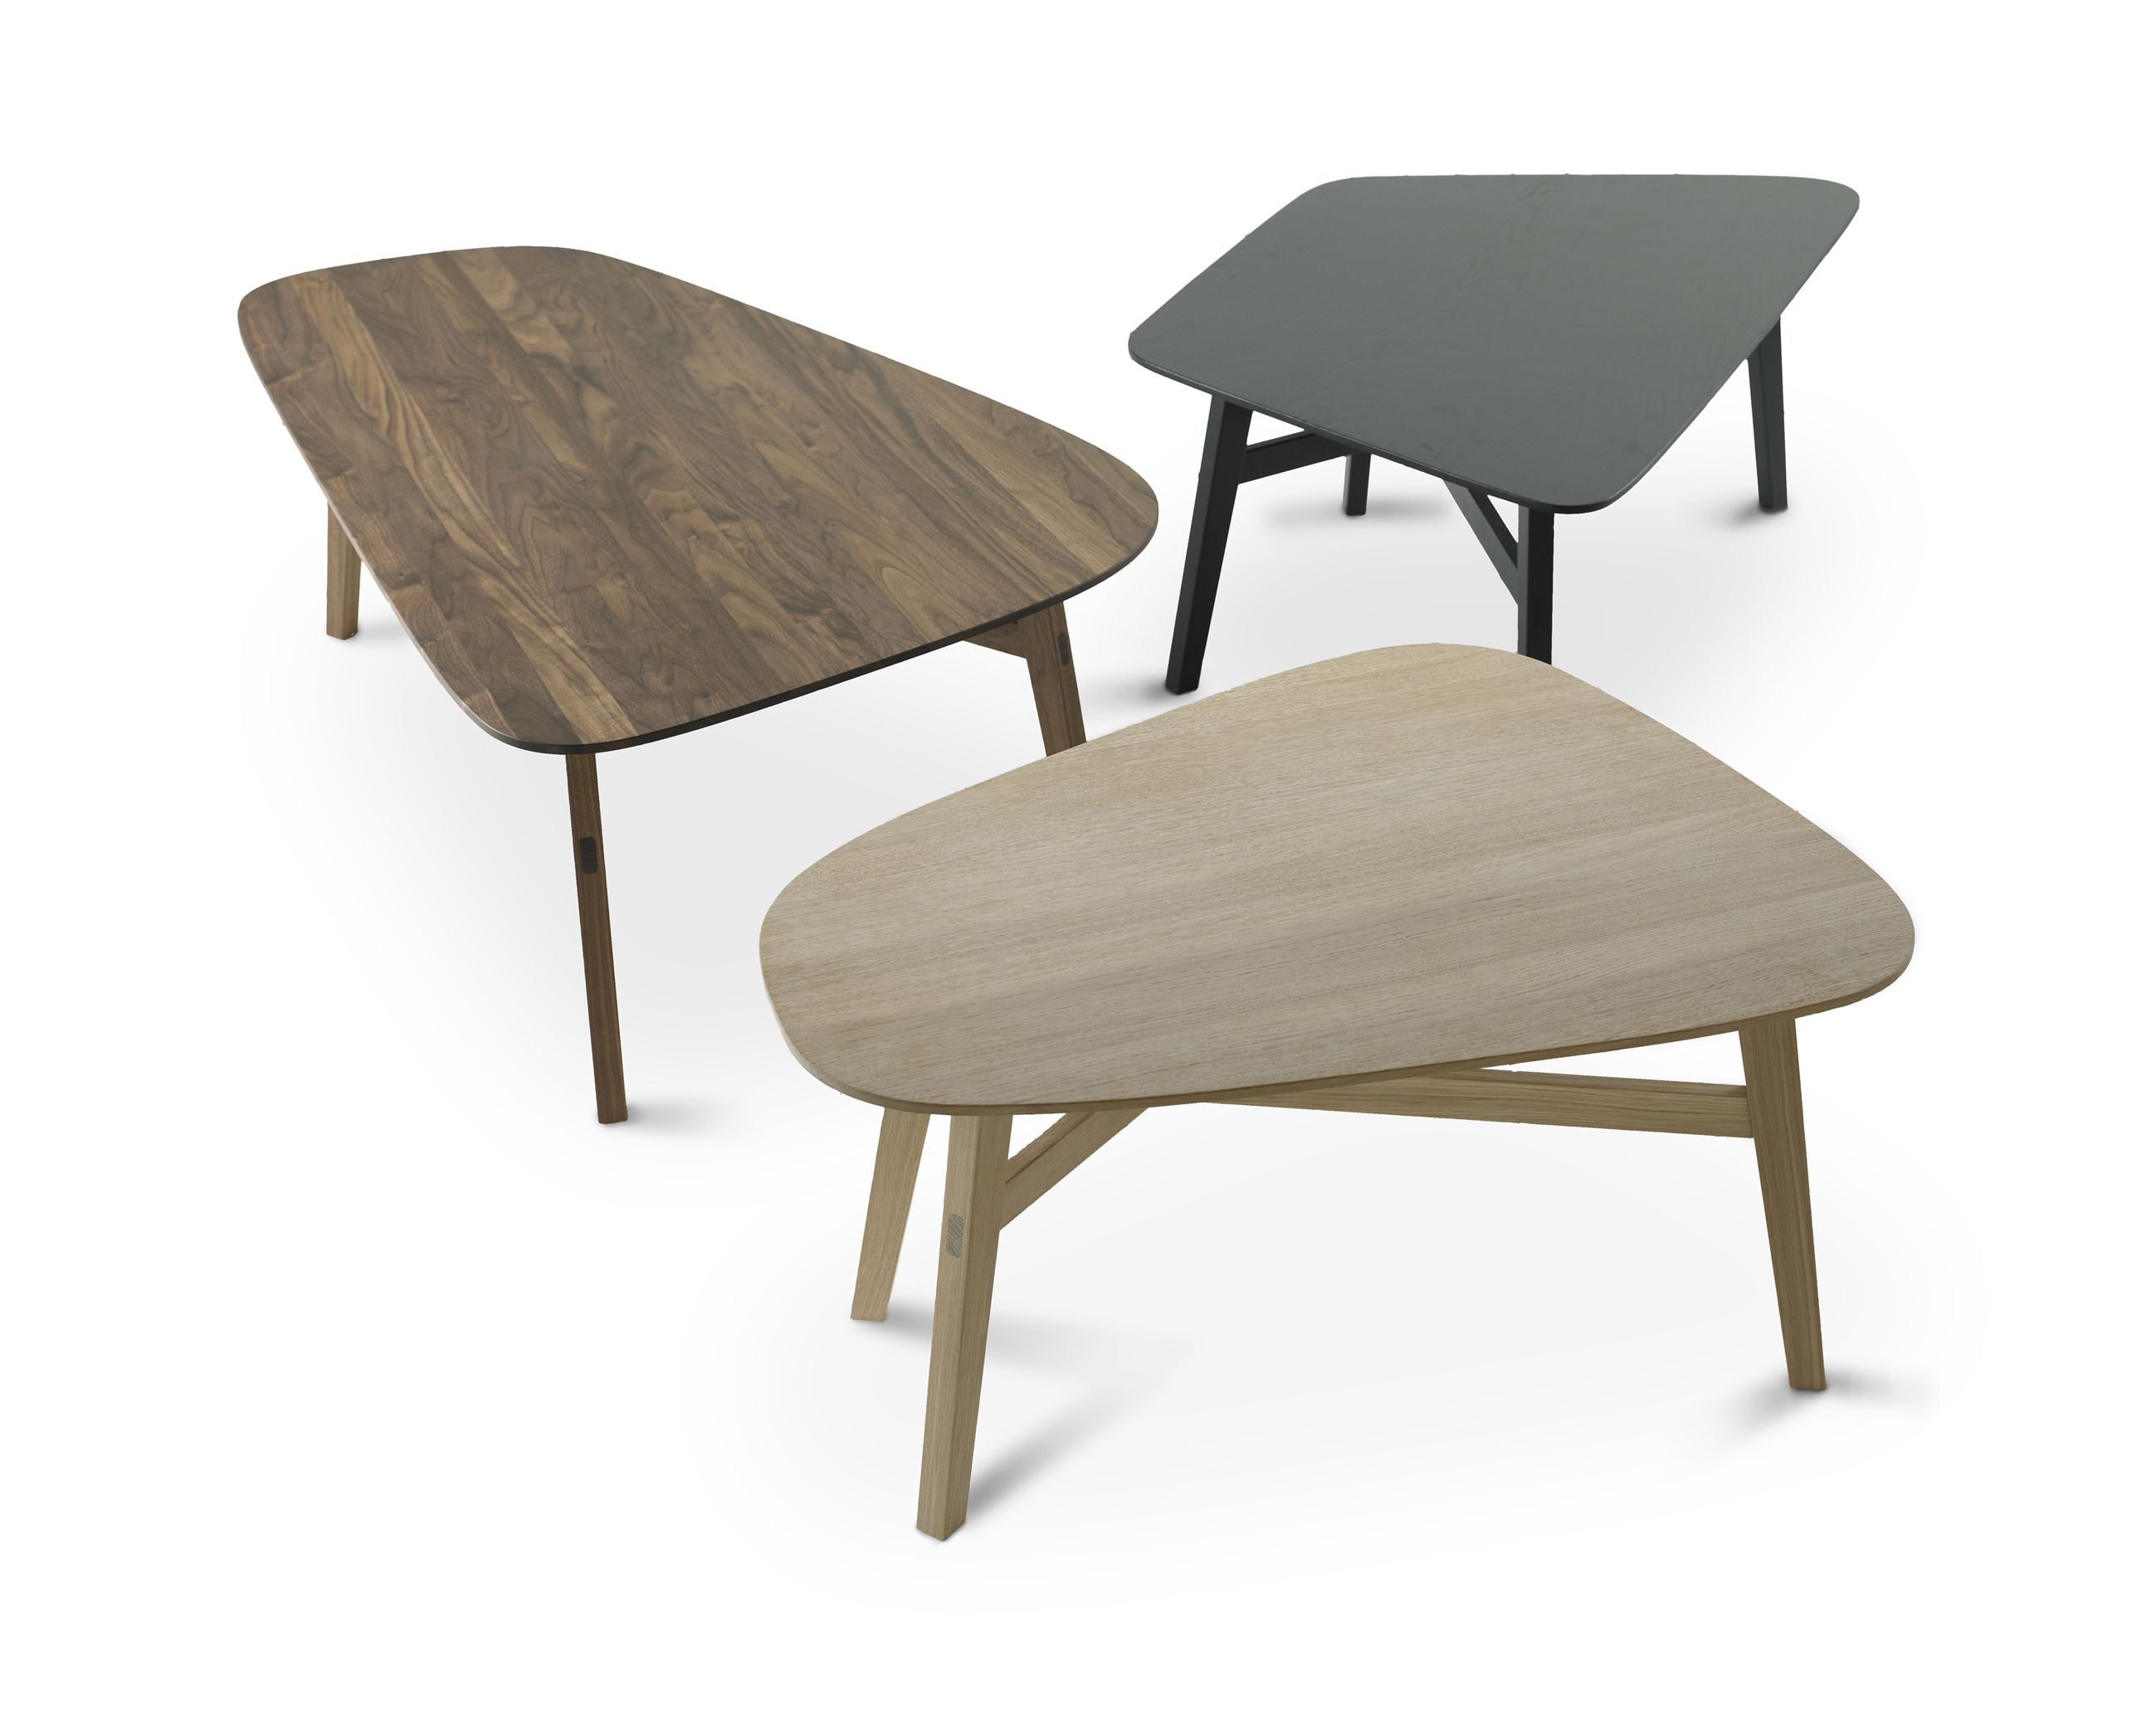 100 best TRUNKS & COFFEETABLES images on Pinterest